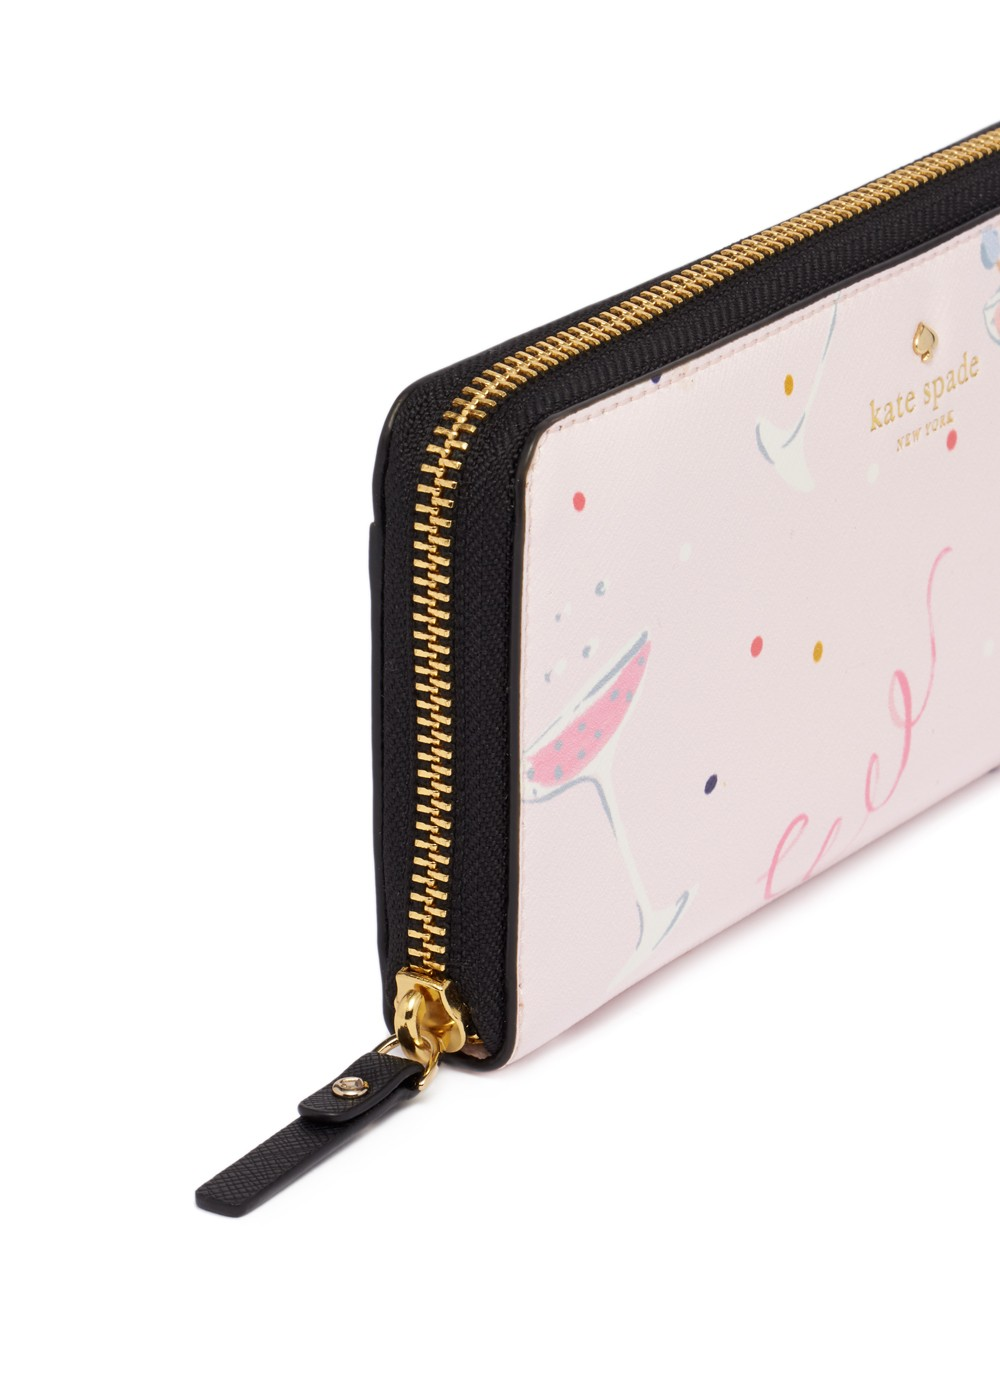 【最大48%OFF】【'19春夏新作】DASHING BEAUTY LINDSEY|MULTI|レディース財布|kate spade new york - wallet and more